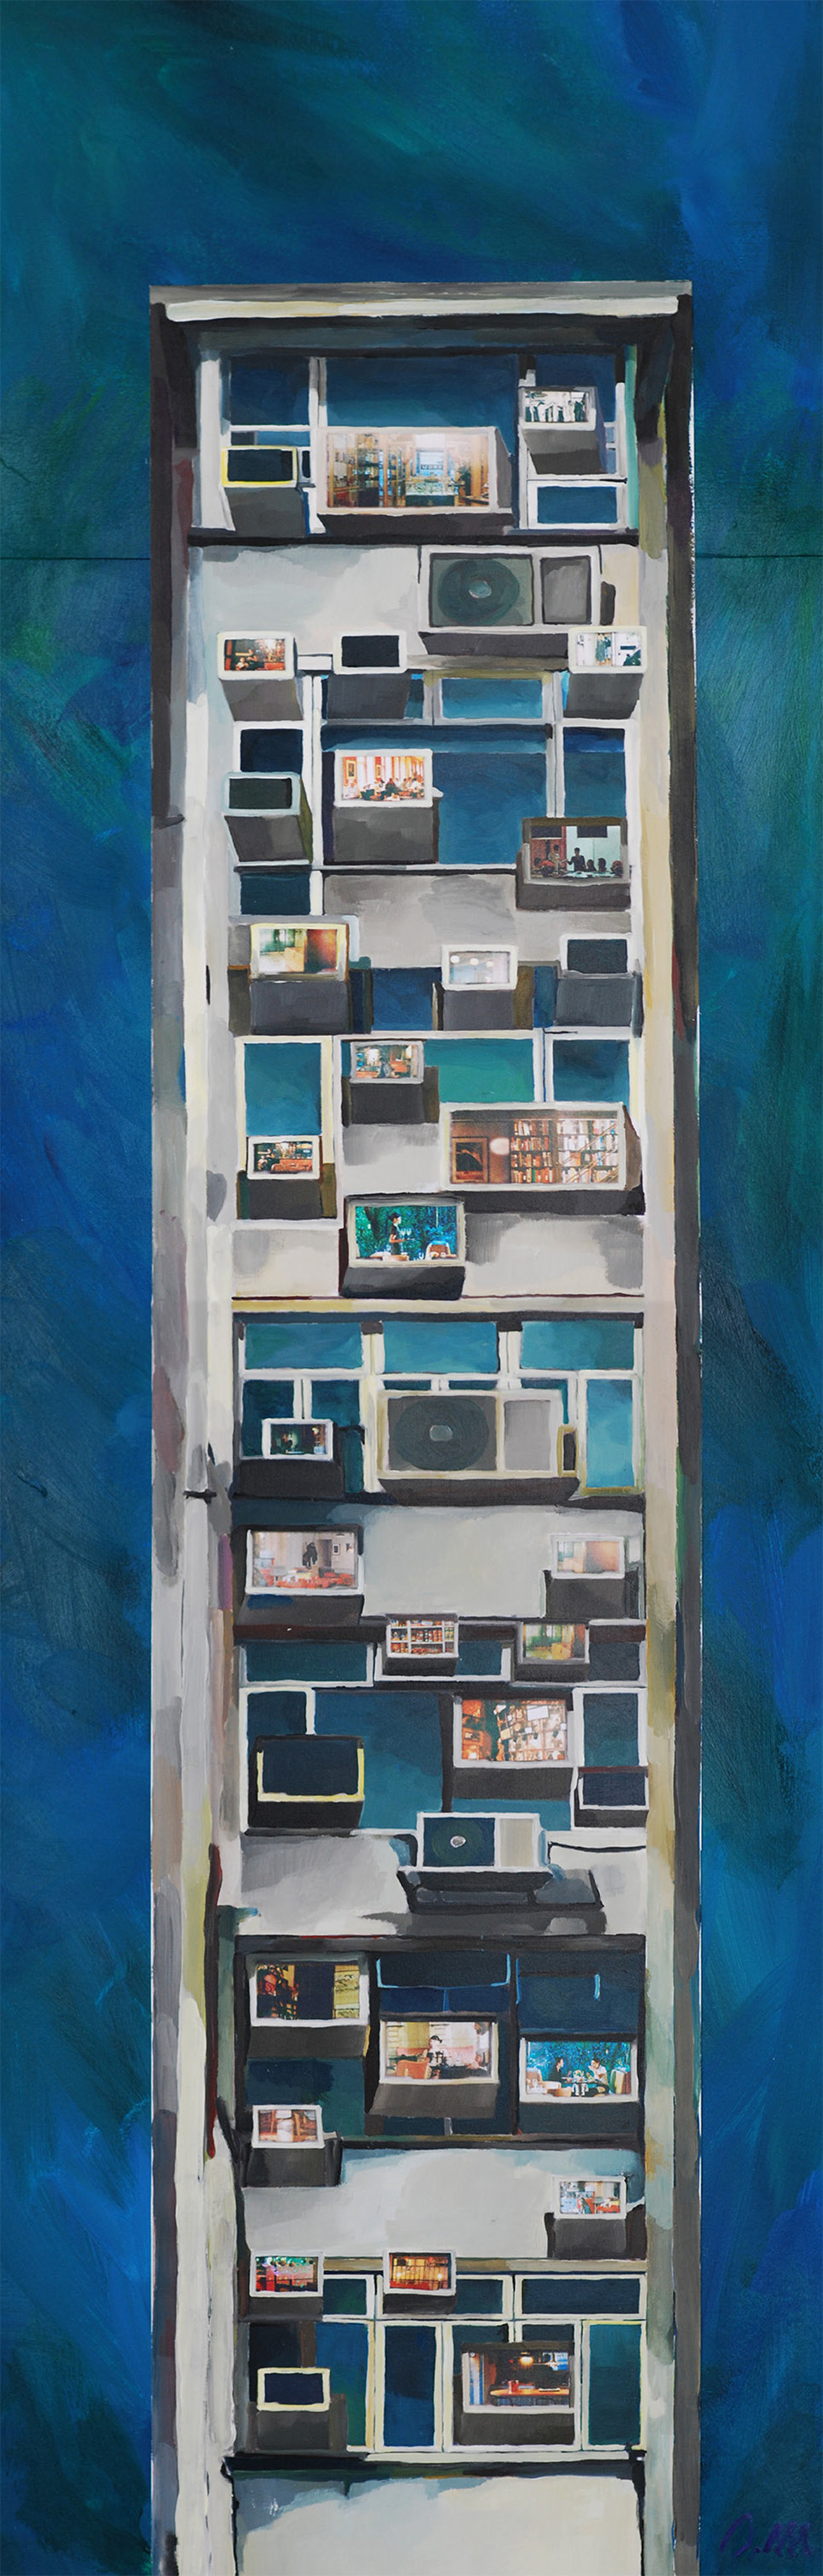 Living in AC Boxes - 2014 (SOLD)